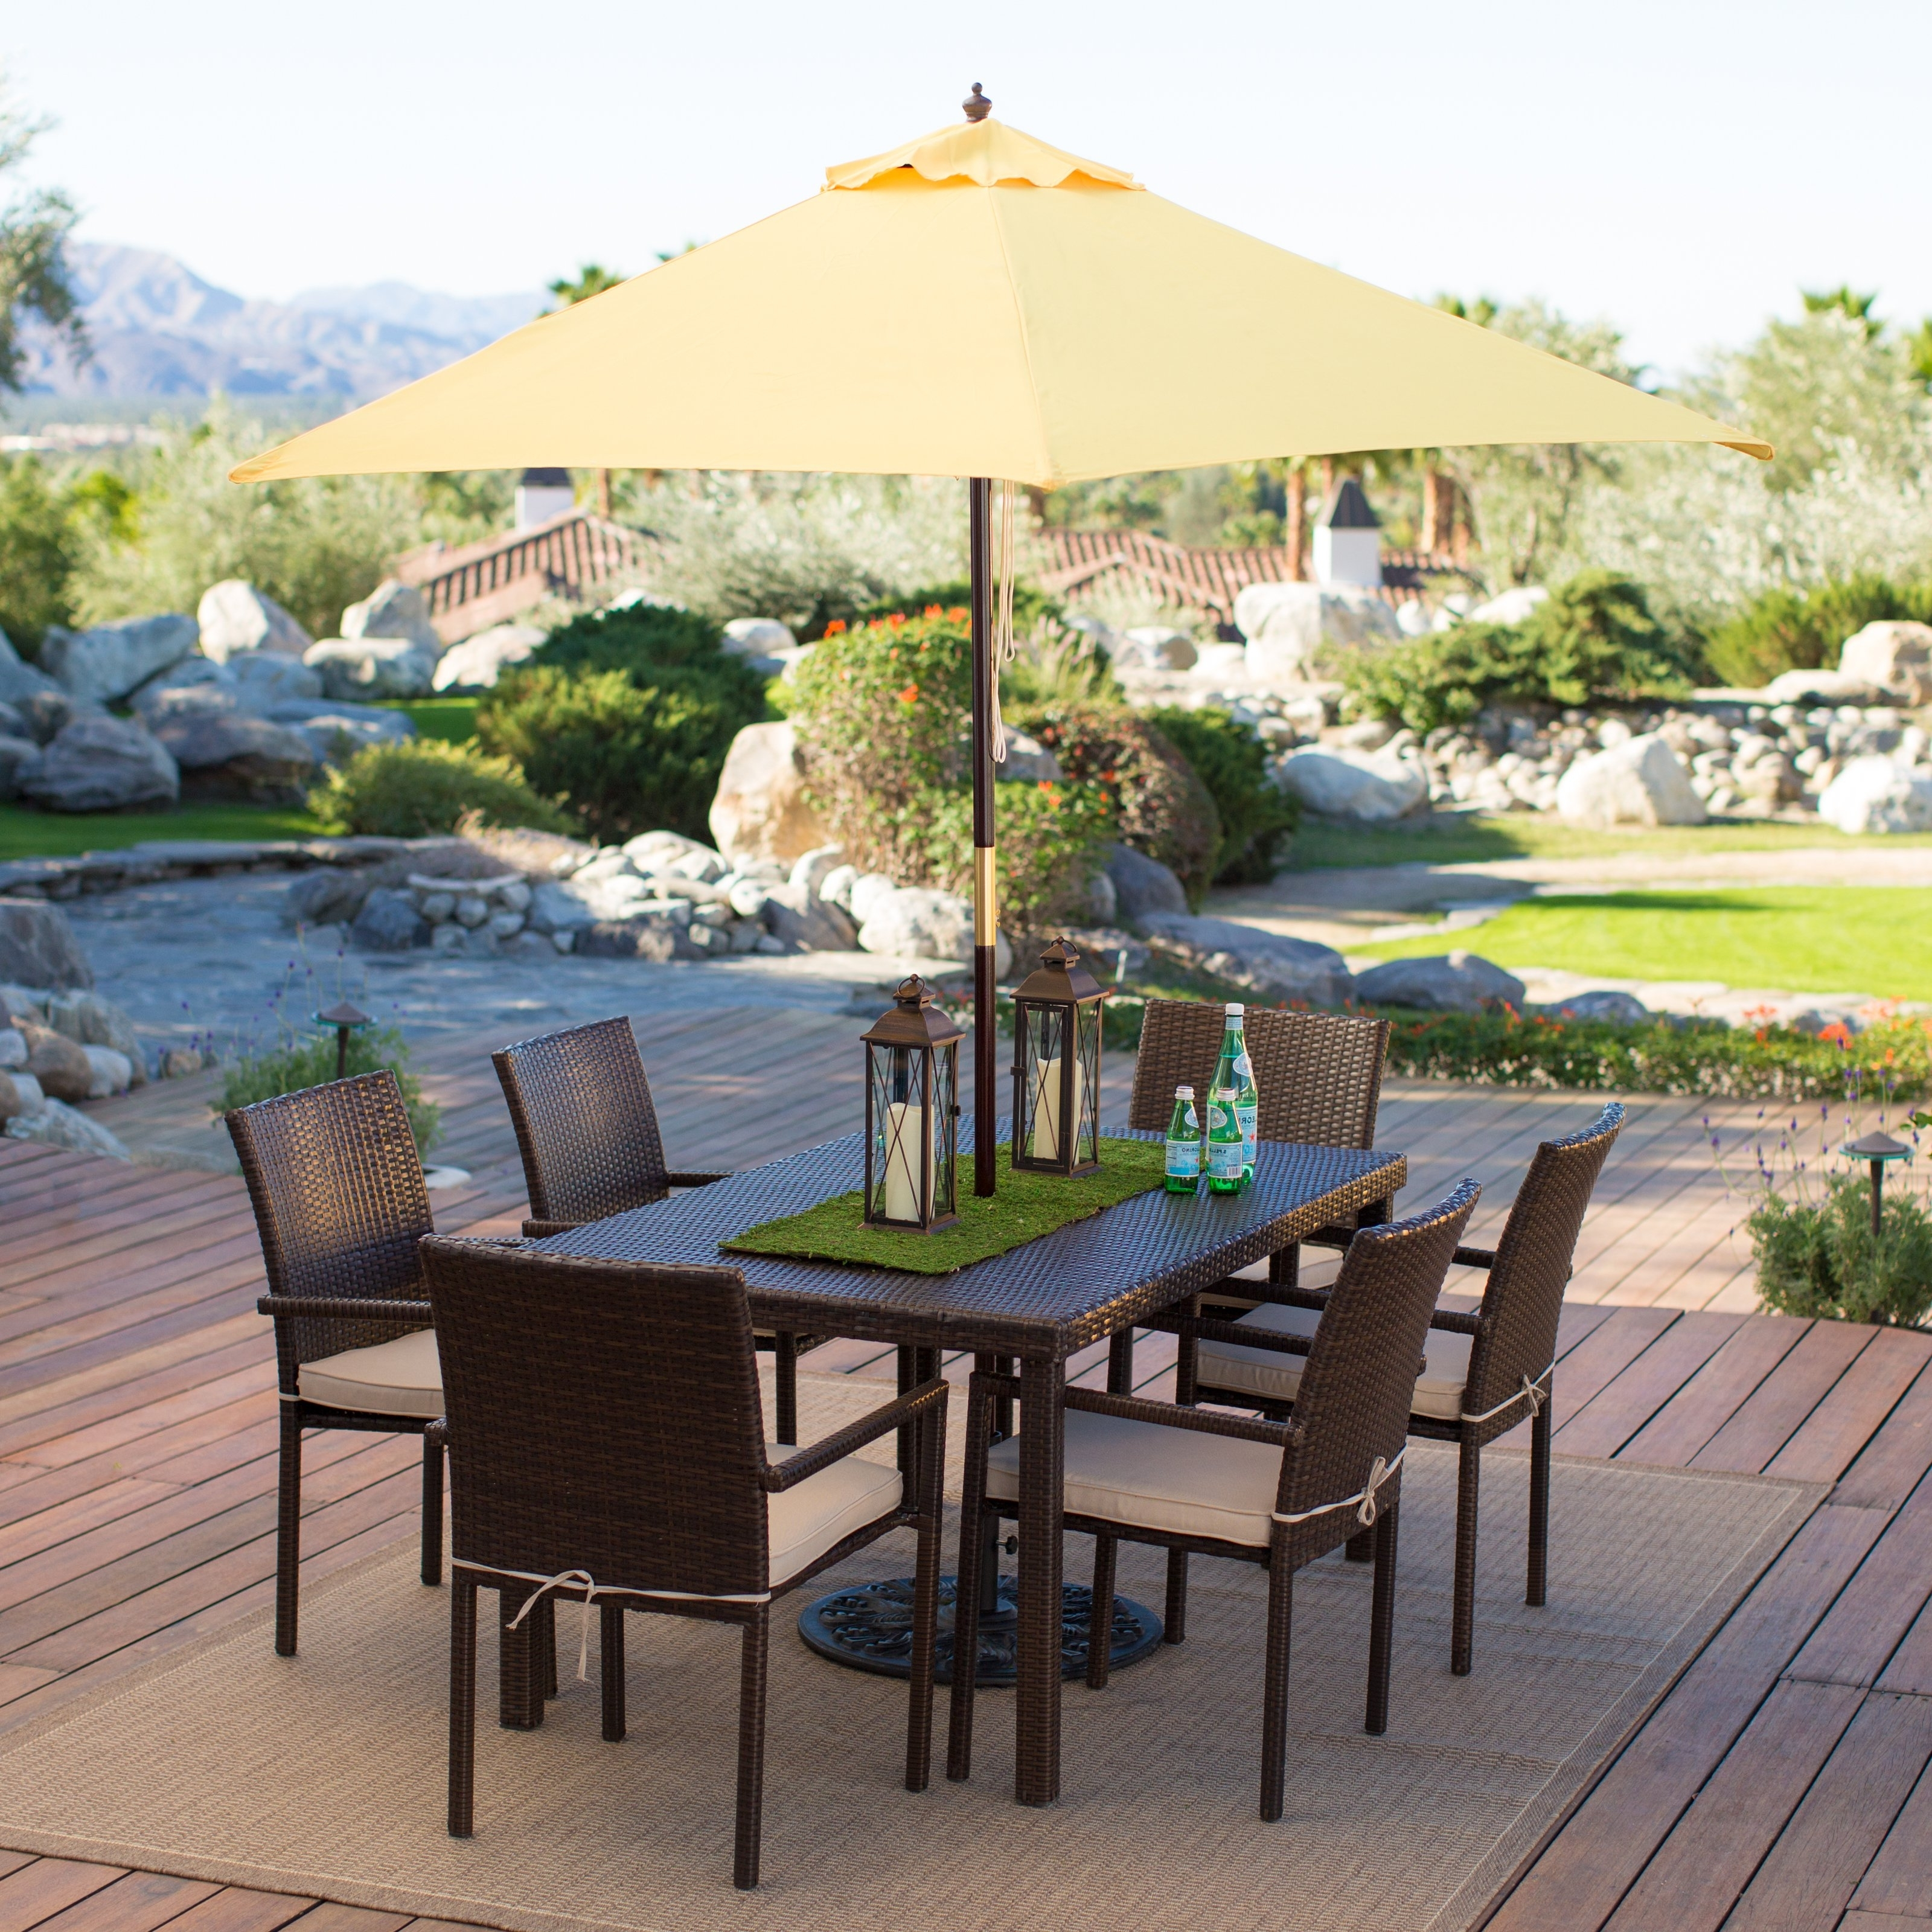 Garden: Enchanting Outdoor Patio Decor Ideas With Patio Umbrellas With Widely Used Rectangular Patio Umbrellas (View 5 of 20)